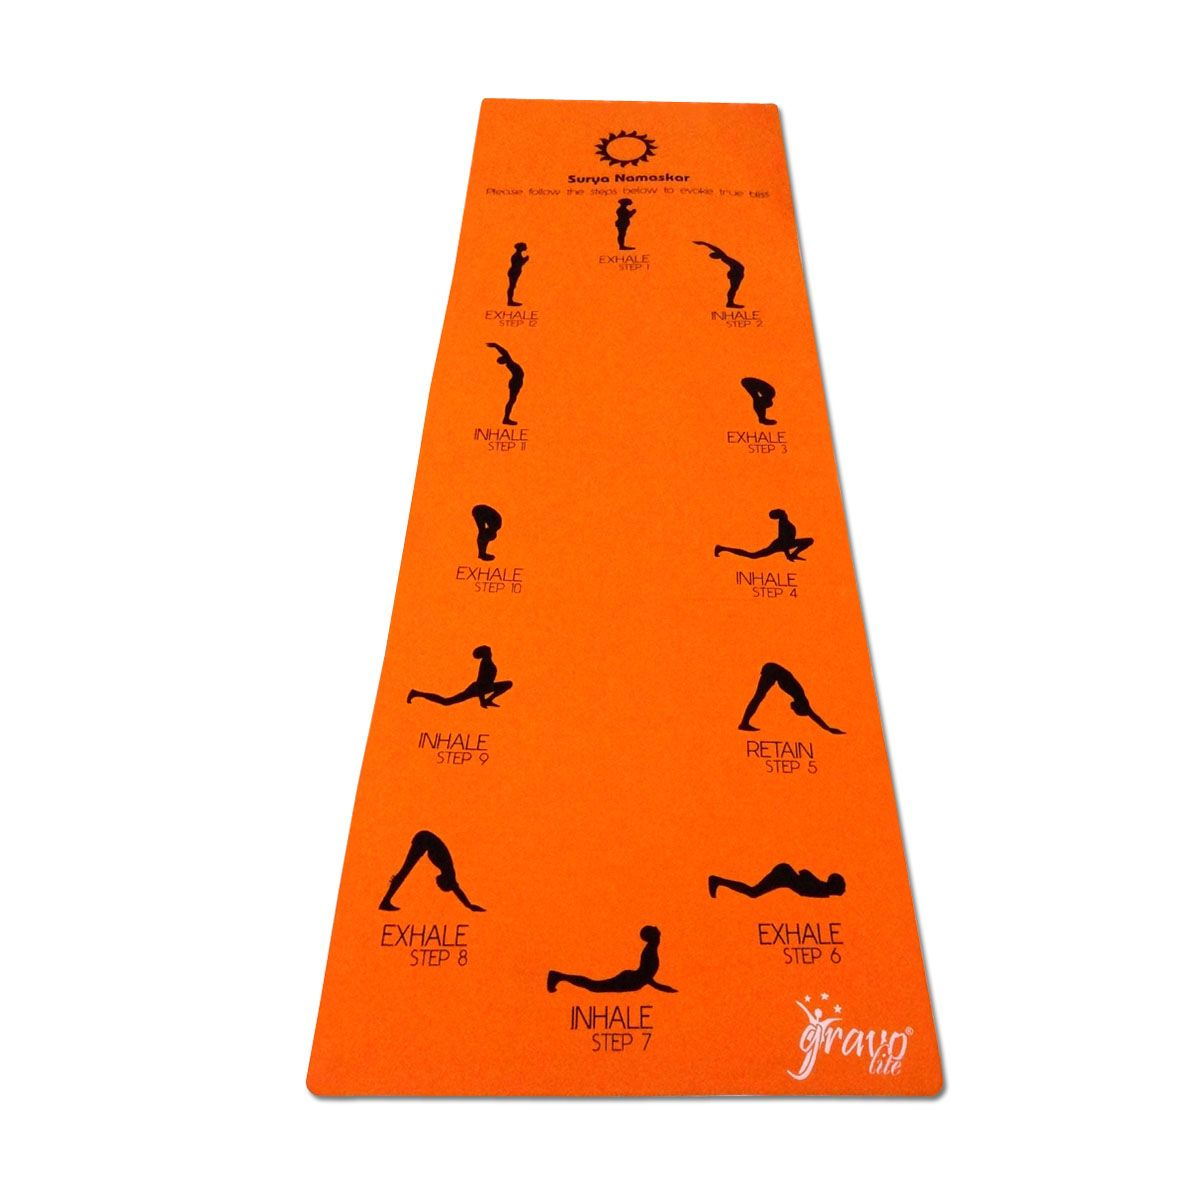 Yoga Mats Supplier In India Looking For Best Yoga Mats Supplier In India At Clonko We Supply The Best Yoga Mats That Are Passed By The Best Yoga Yoga Stay Fit